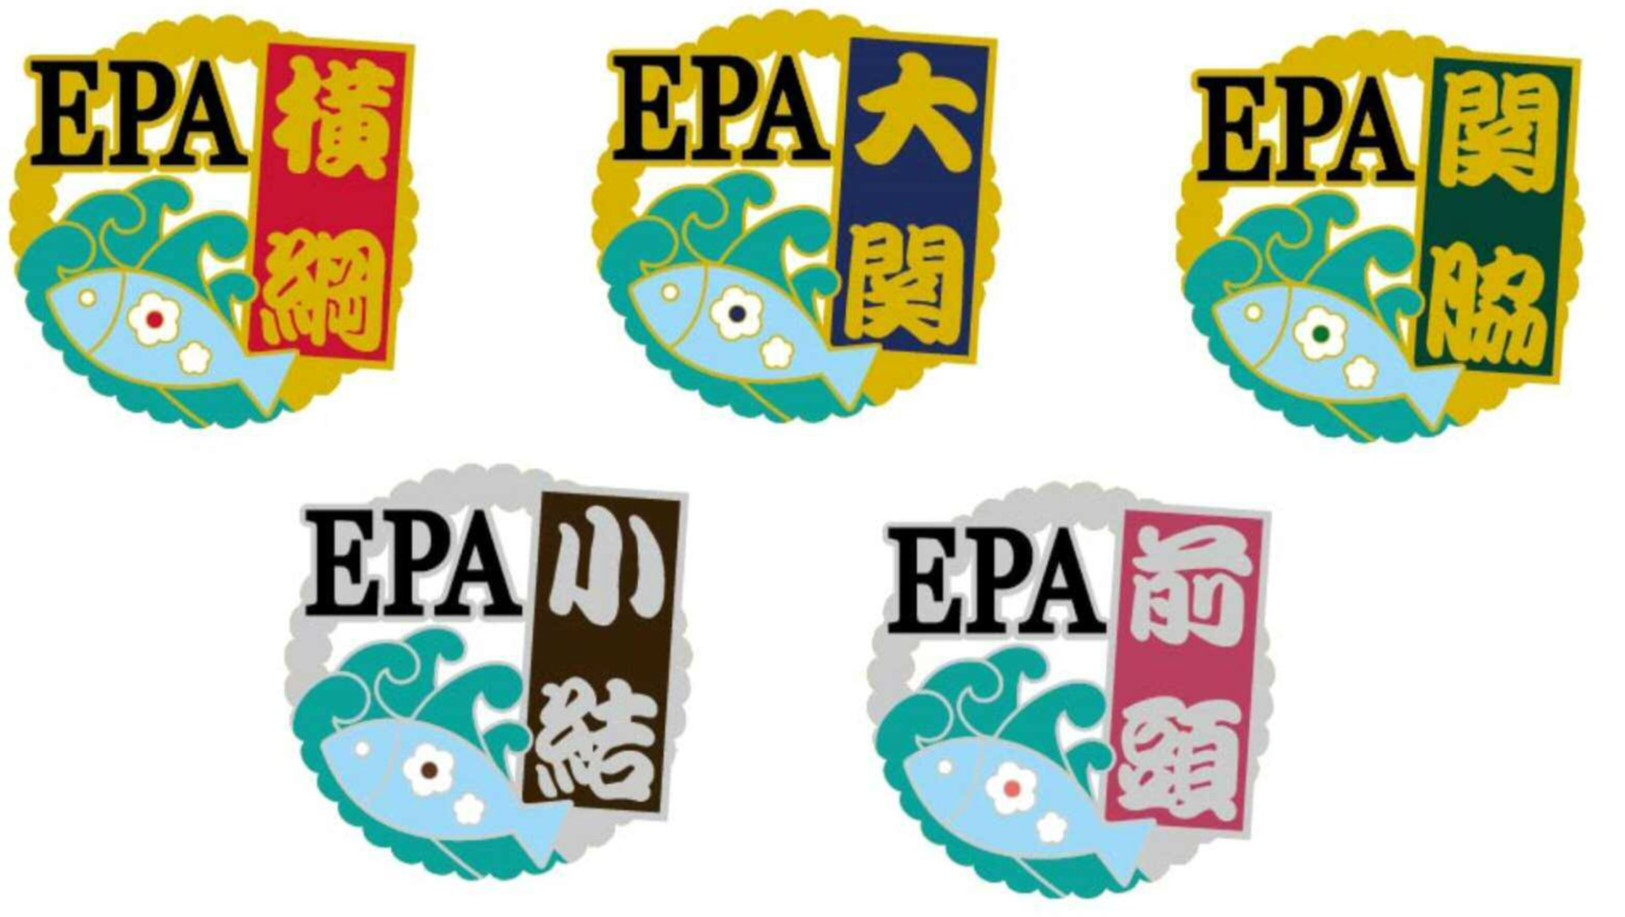 【Picture】Measurement of the EPA/AA Ratio